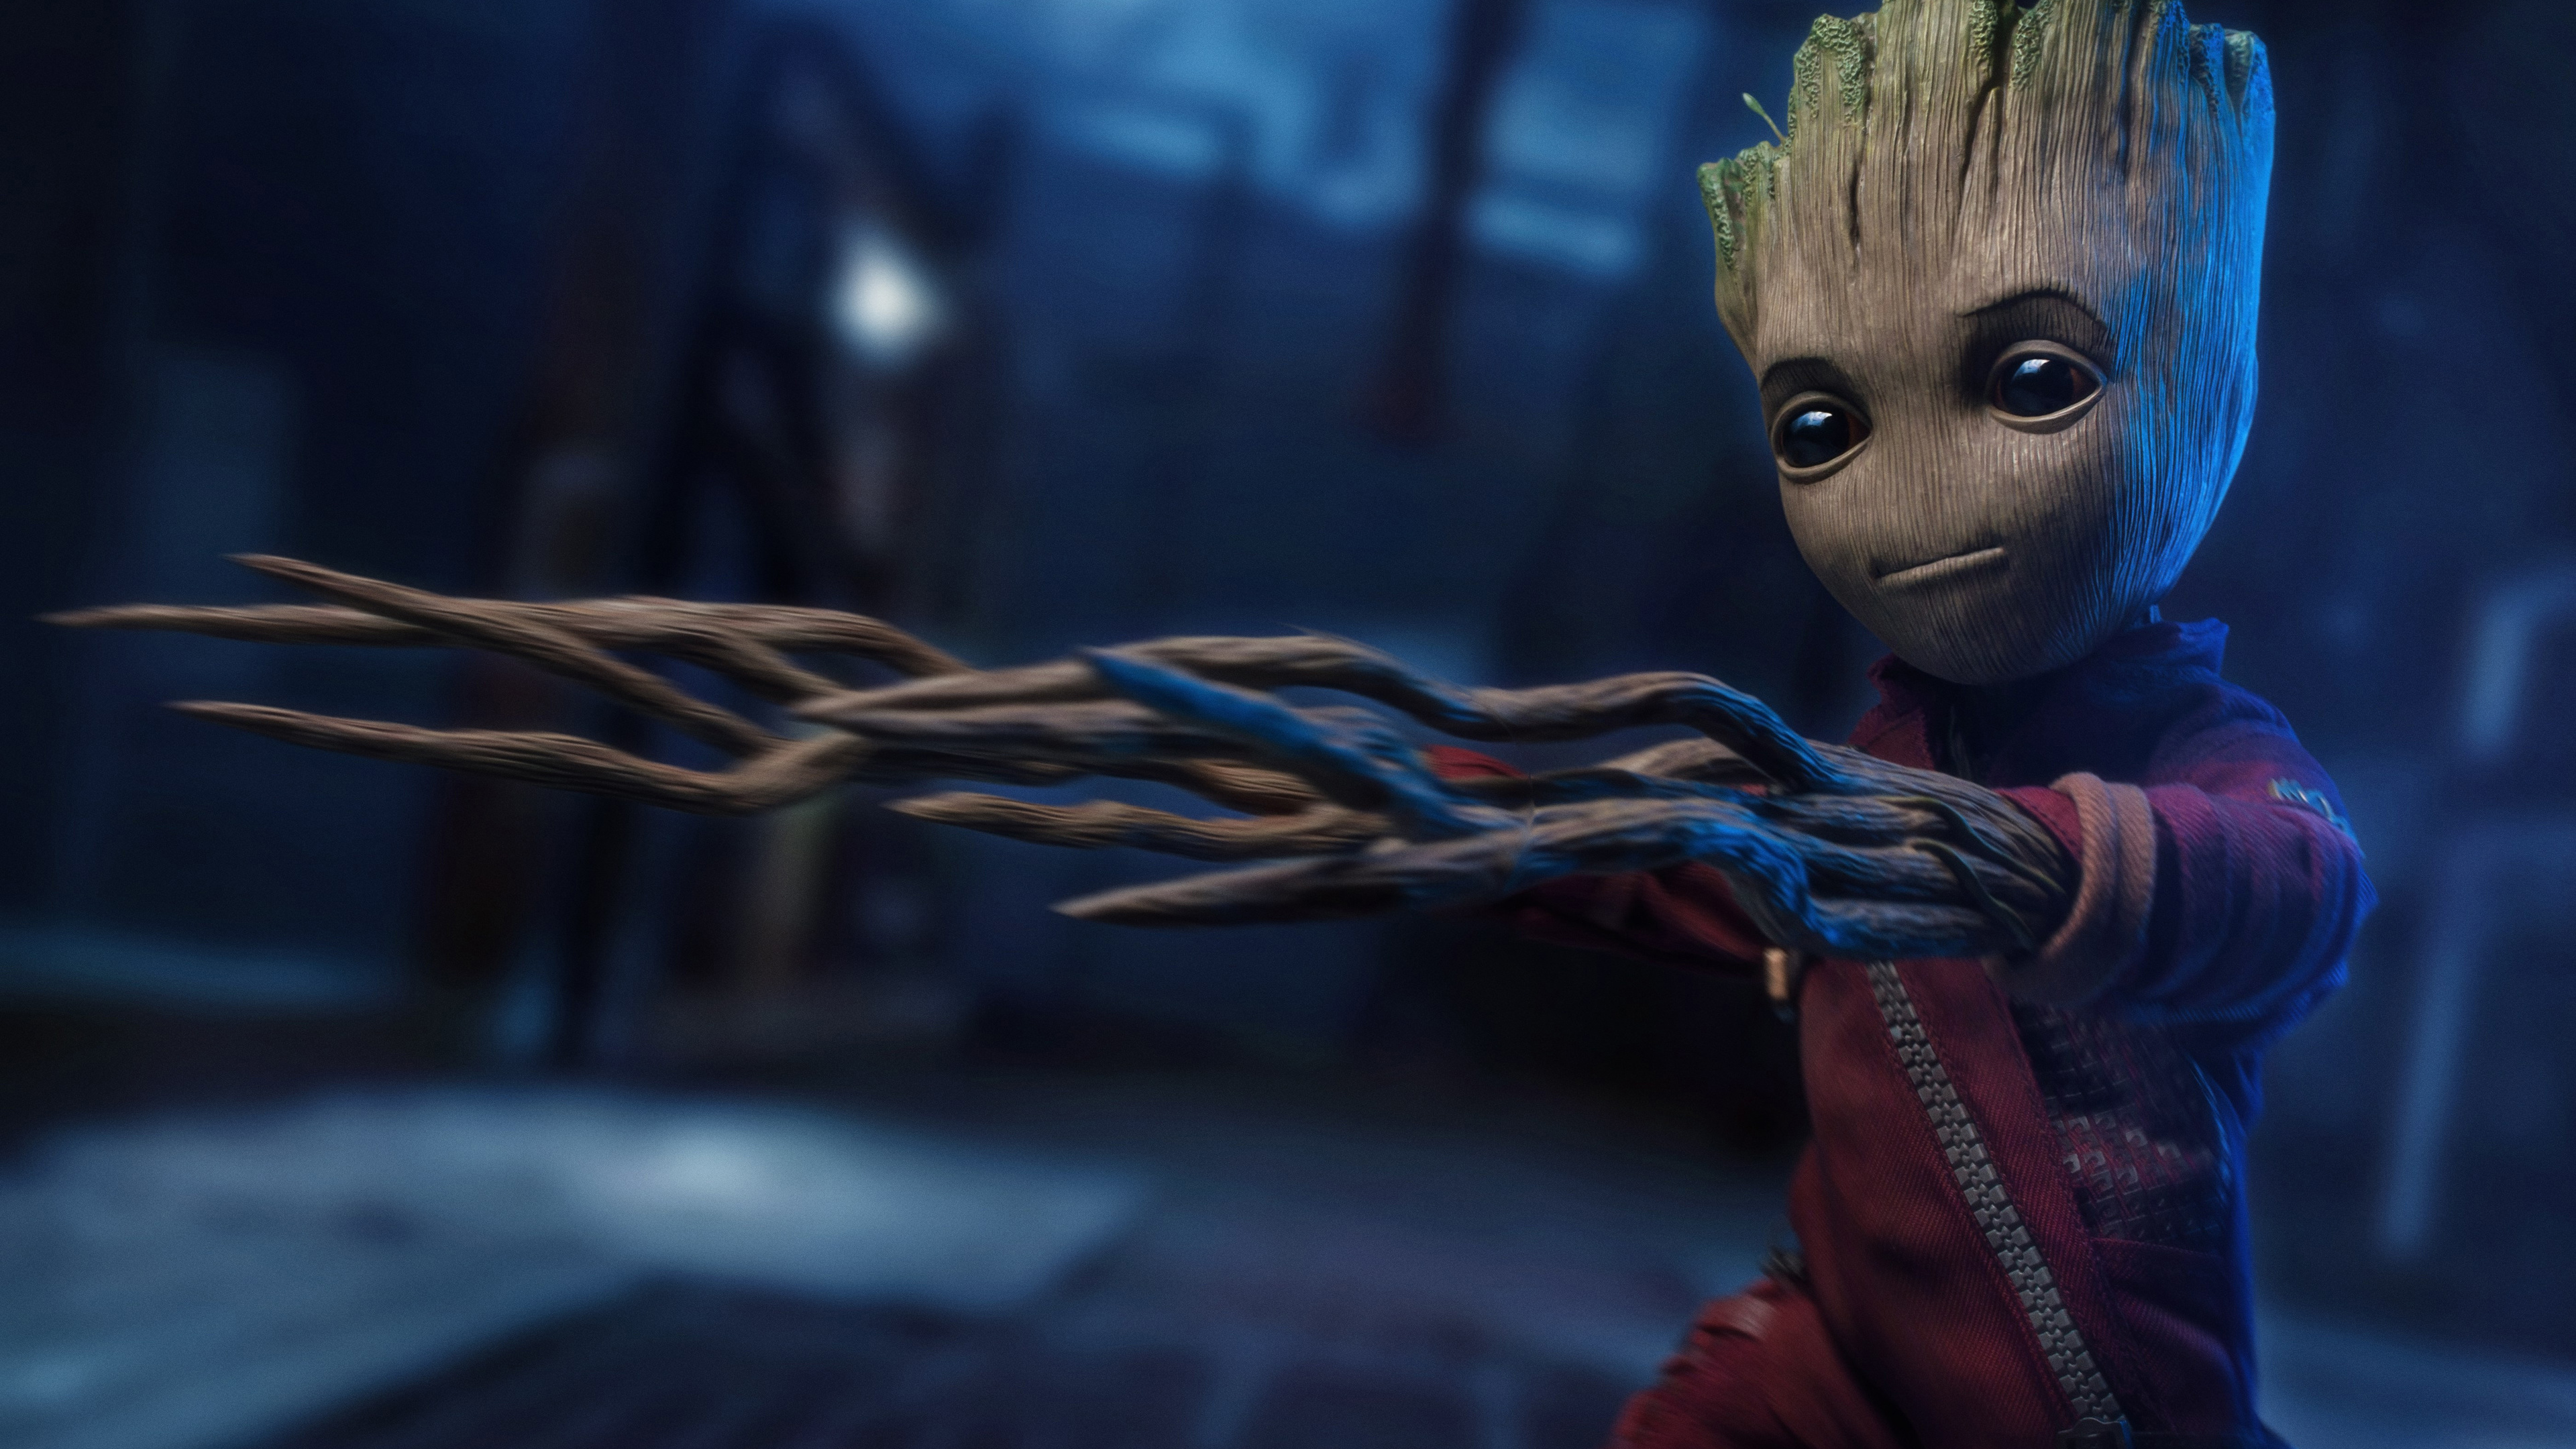 baby groot 5k 2018 1537646044 - Baby Groot 5k 2018 - superheroes wallpapers, hd-wallpapers, groot wallpapers, baby groot wallpapers, 5k wallpapers, 4k-wallpapers